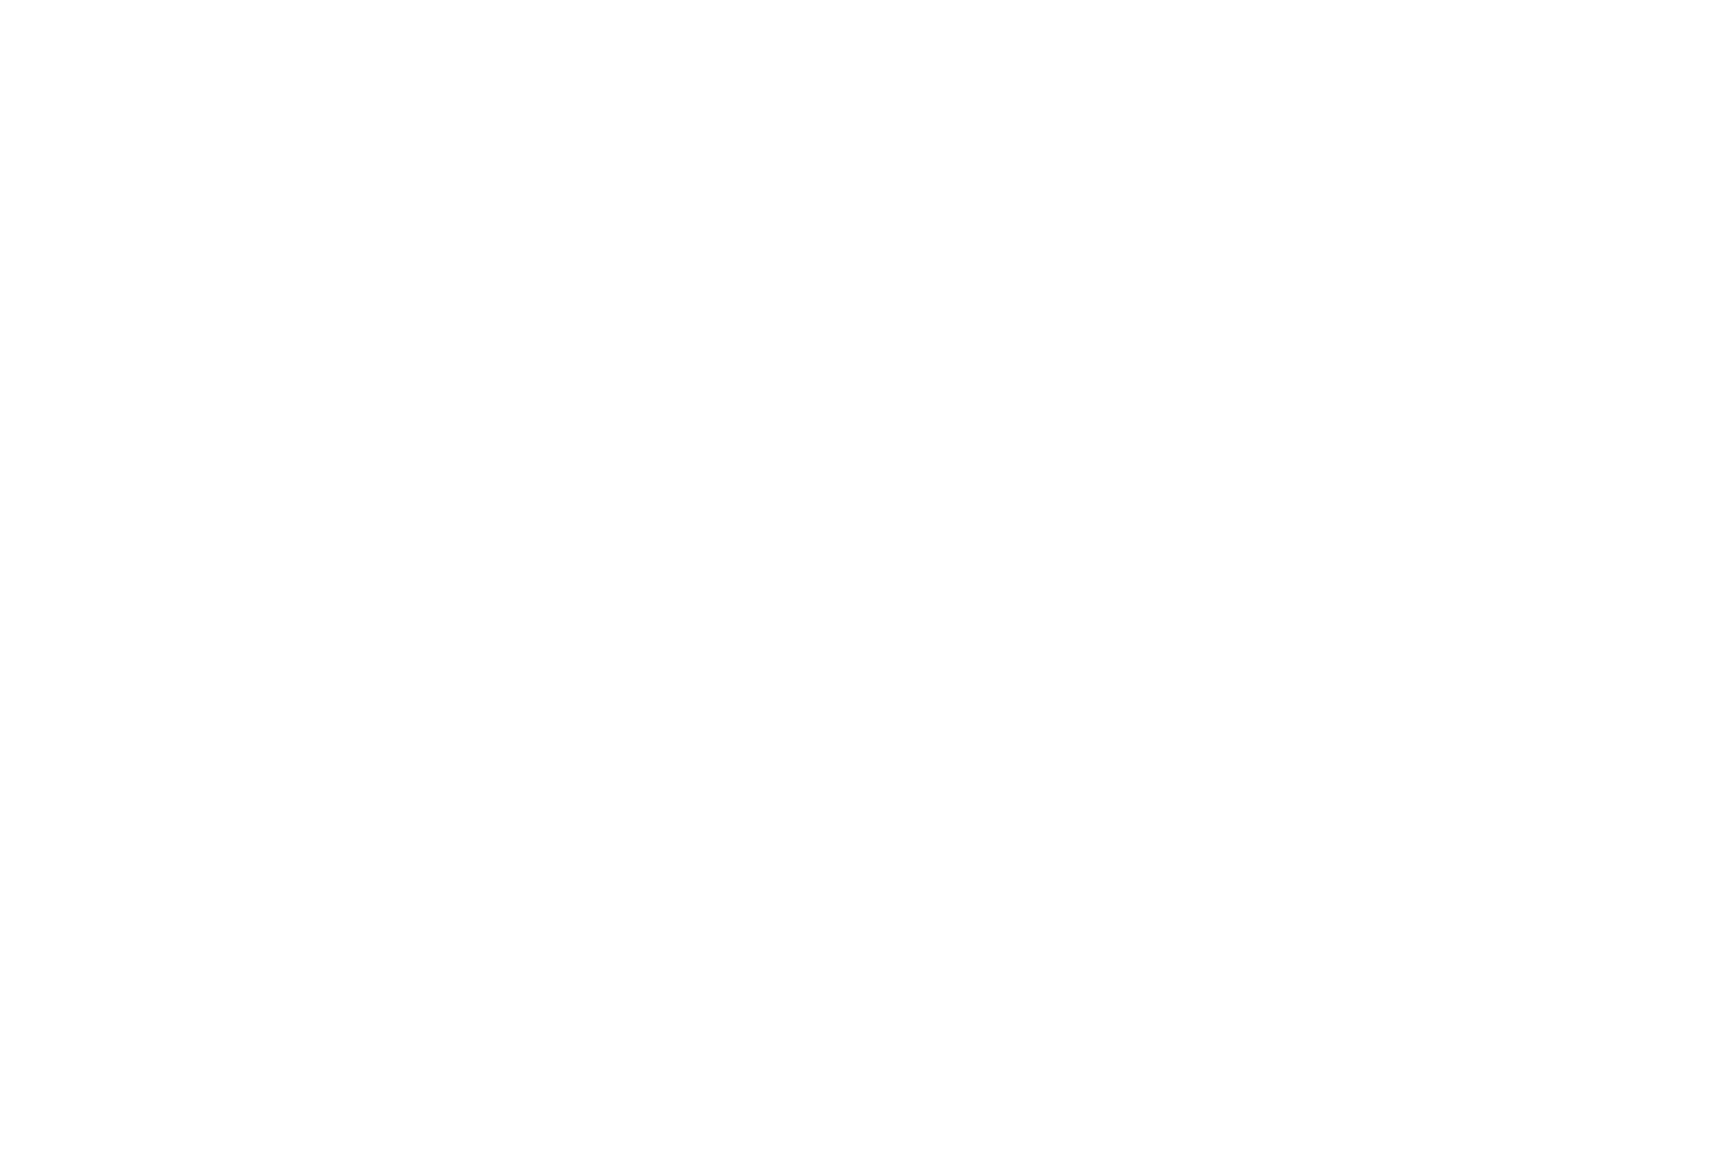 WINNER  - DIRECTOR OF THE MONTH  - DOMFF 2016 (1).png